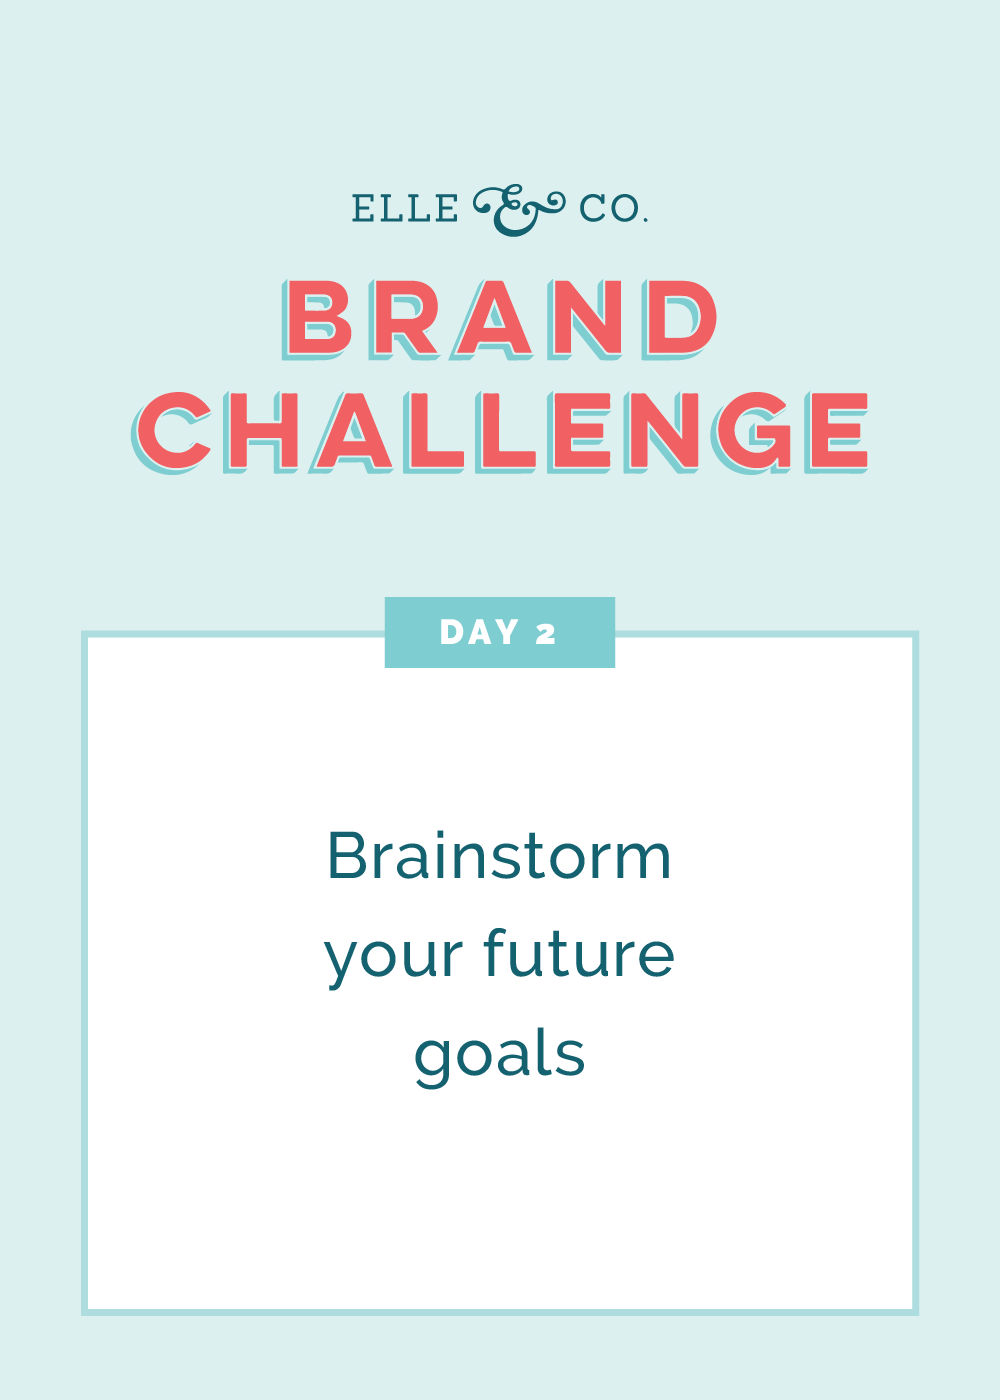 Brand Challenge Day 2: Brainstorm your future goals | Elle & Company